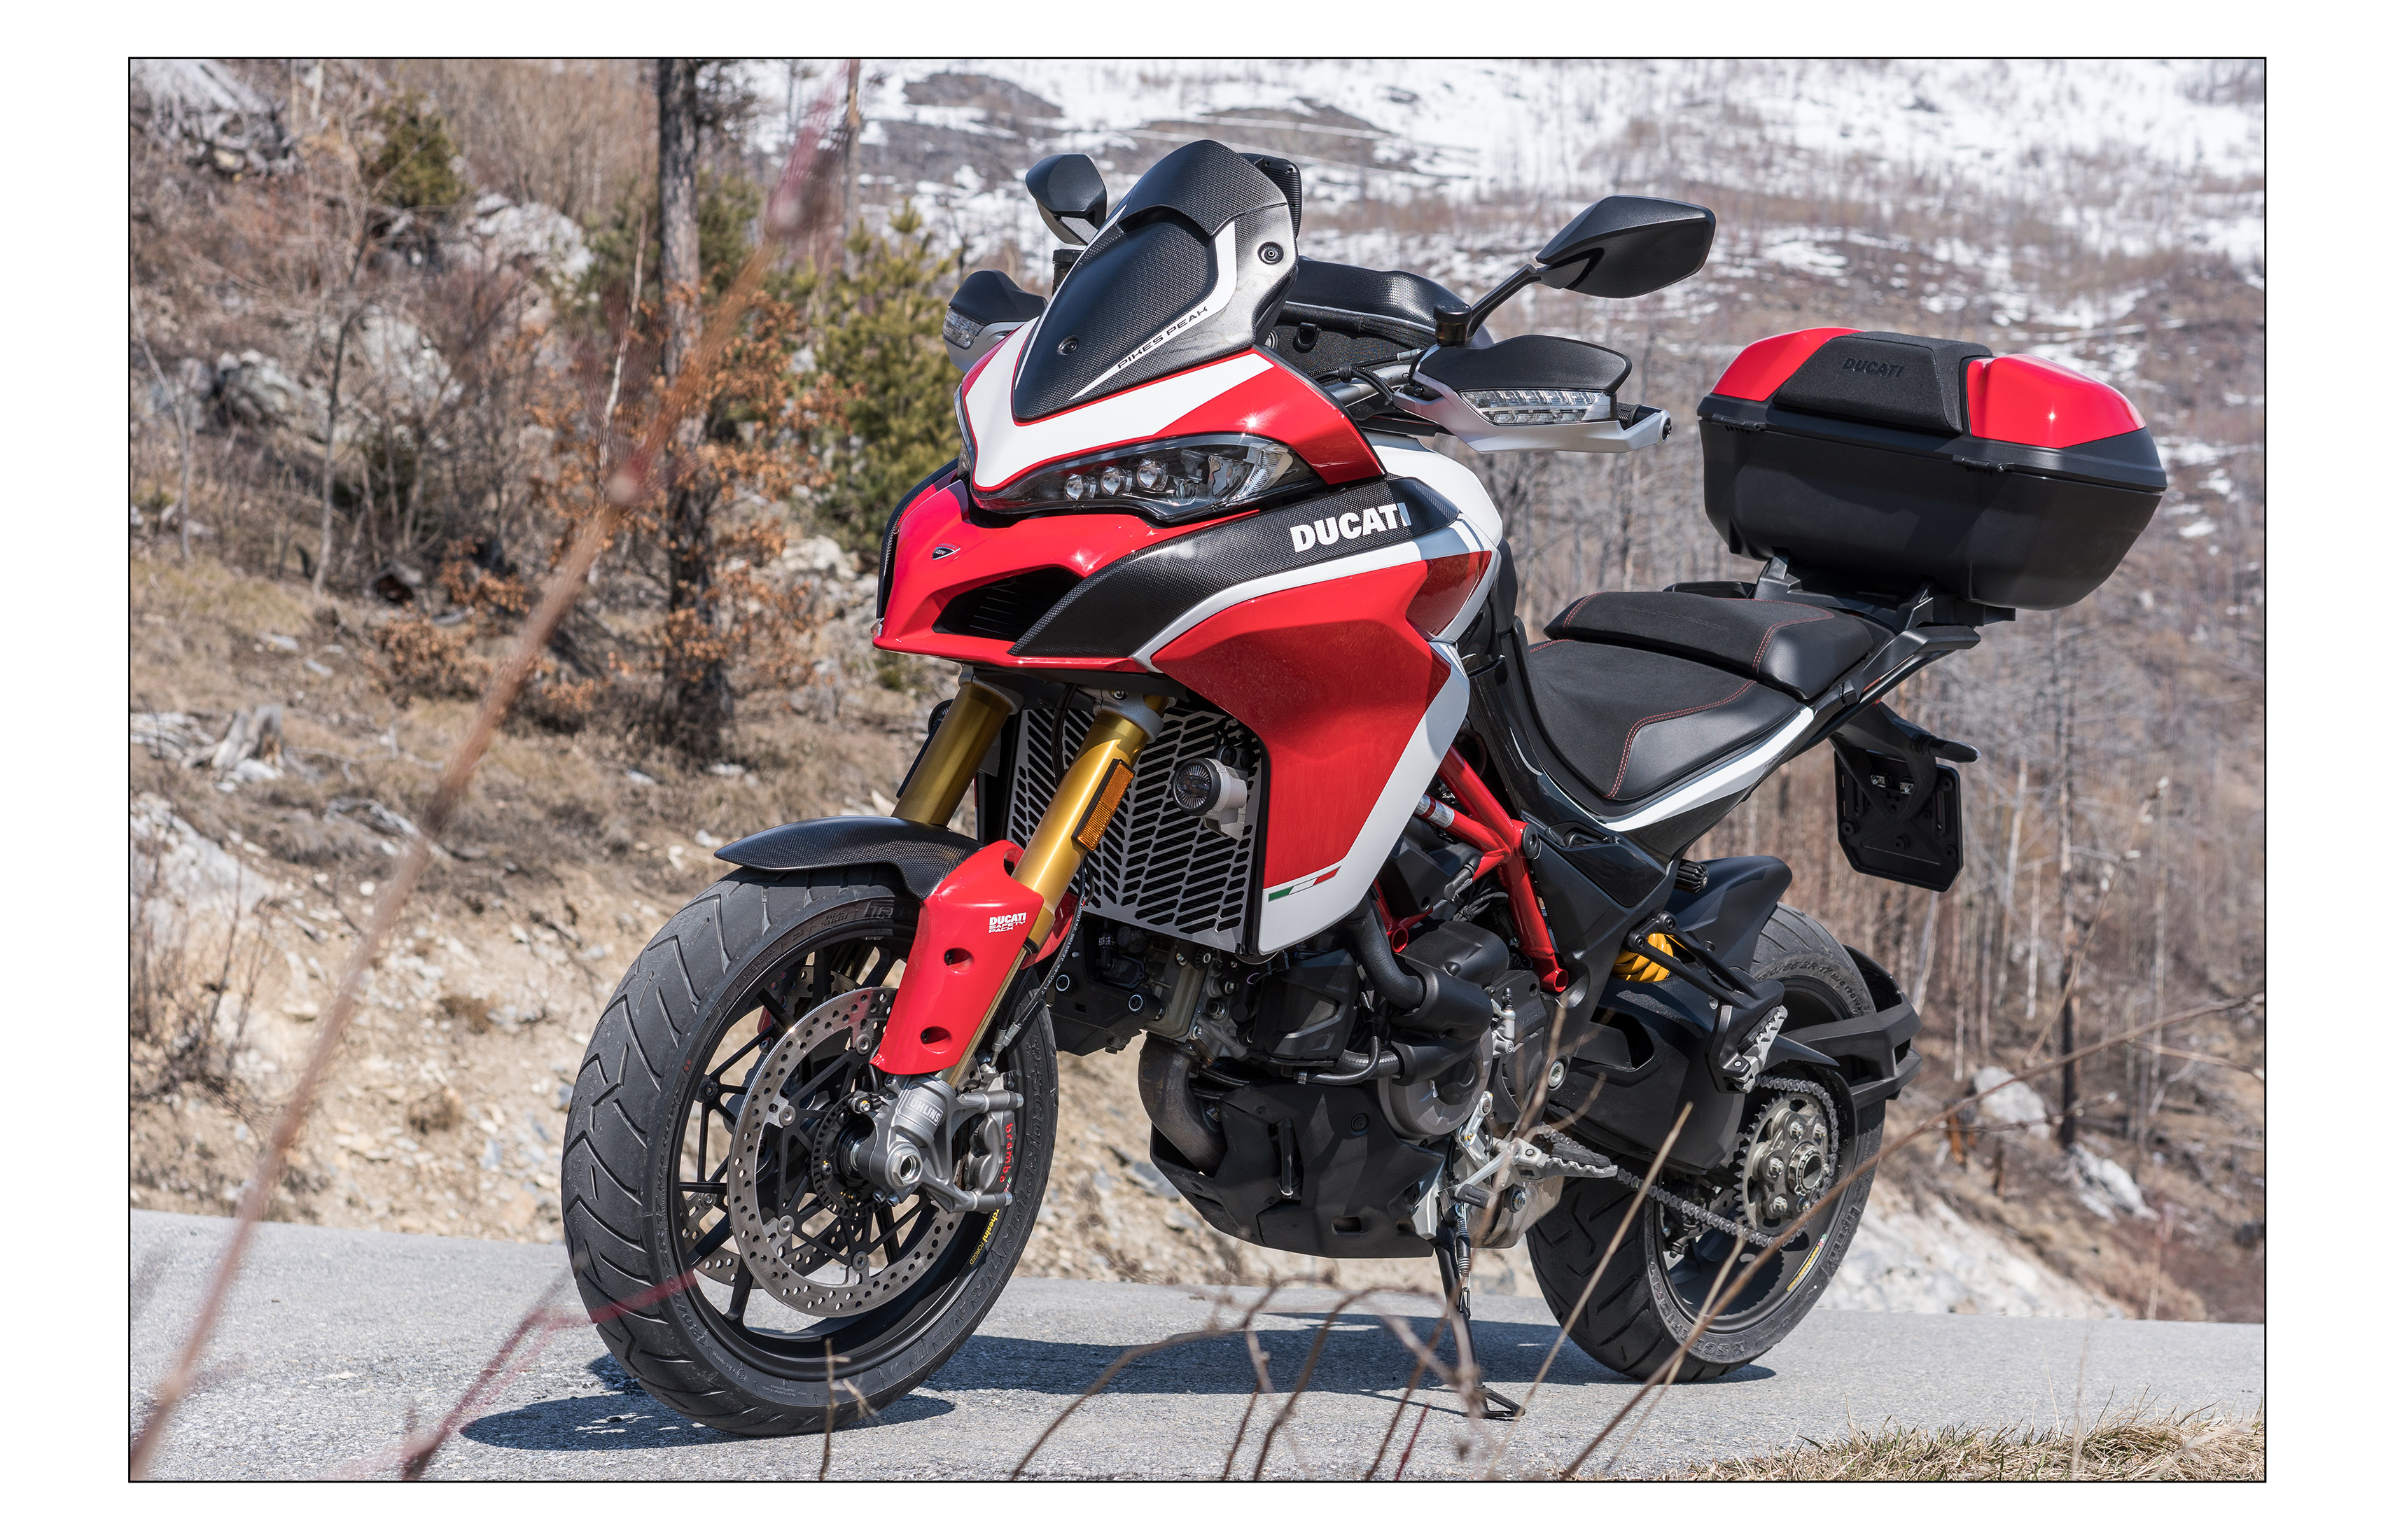 nouveaute 2018 la nouvelle multistrada 1260 pikes peak ducati mania le forum francophone. Black Bedroom Furniture Sets. Home Design Ideas